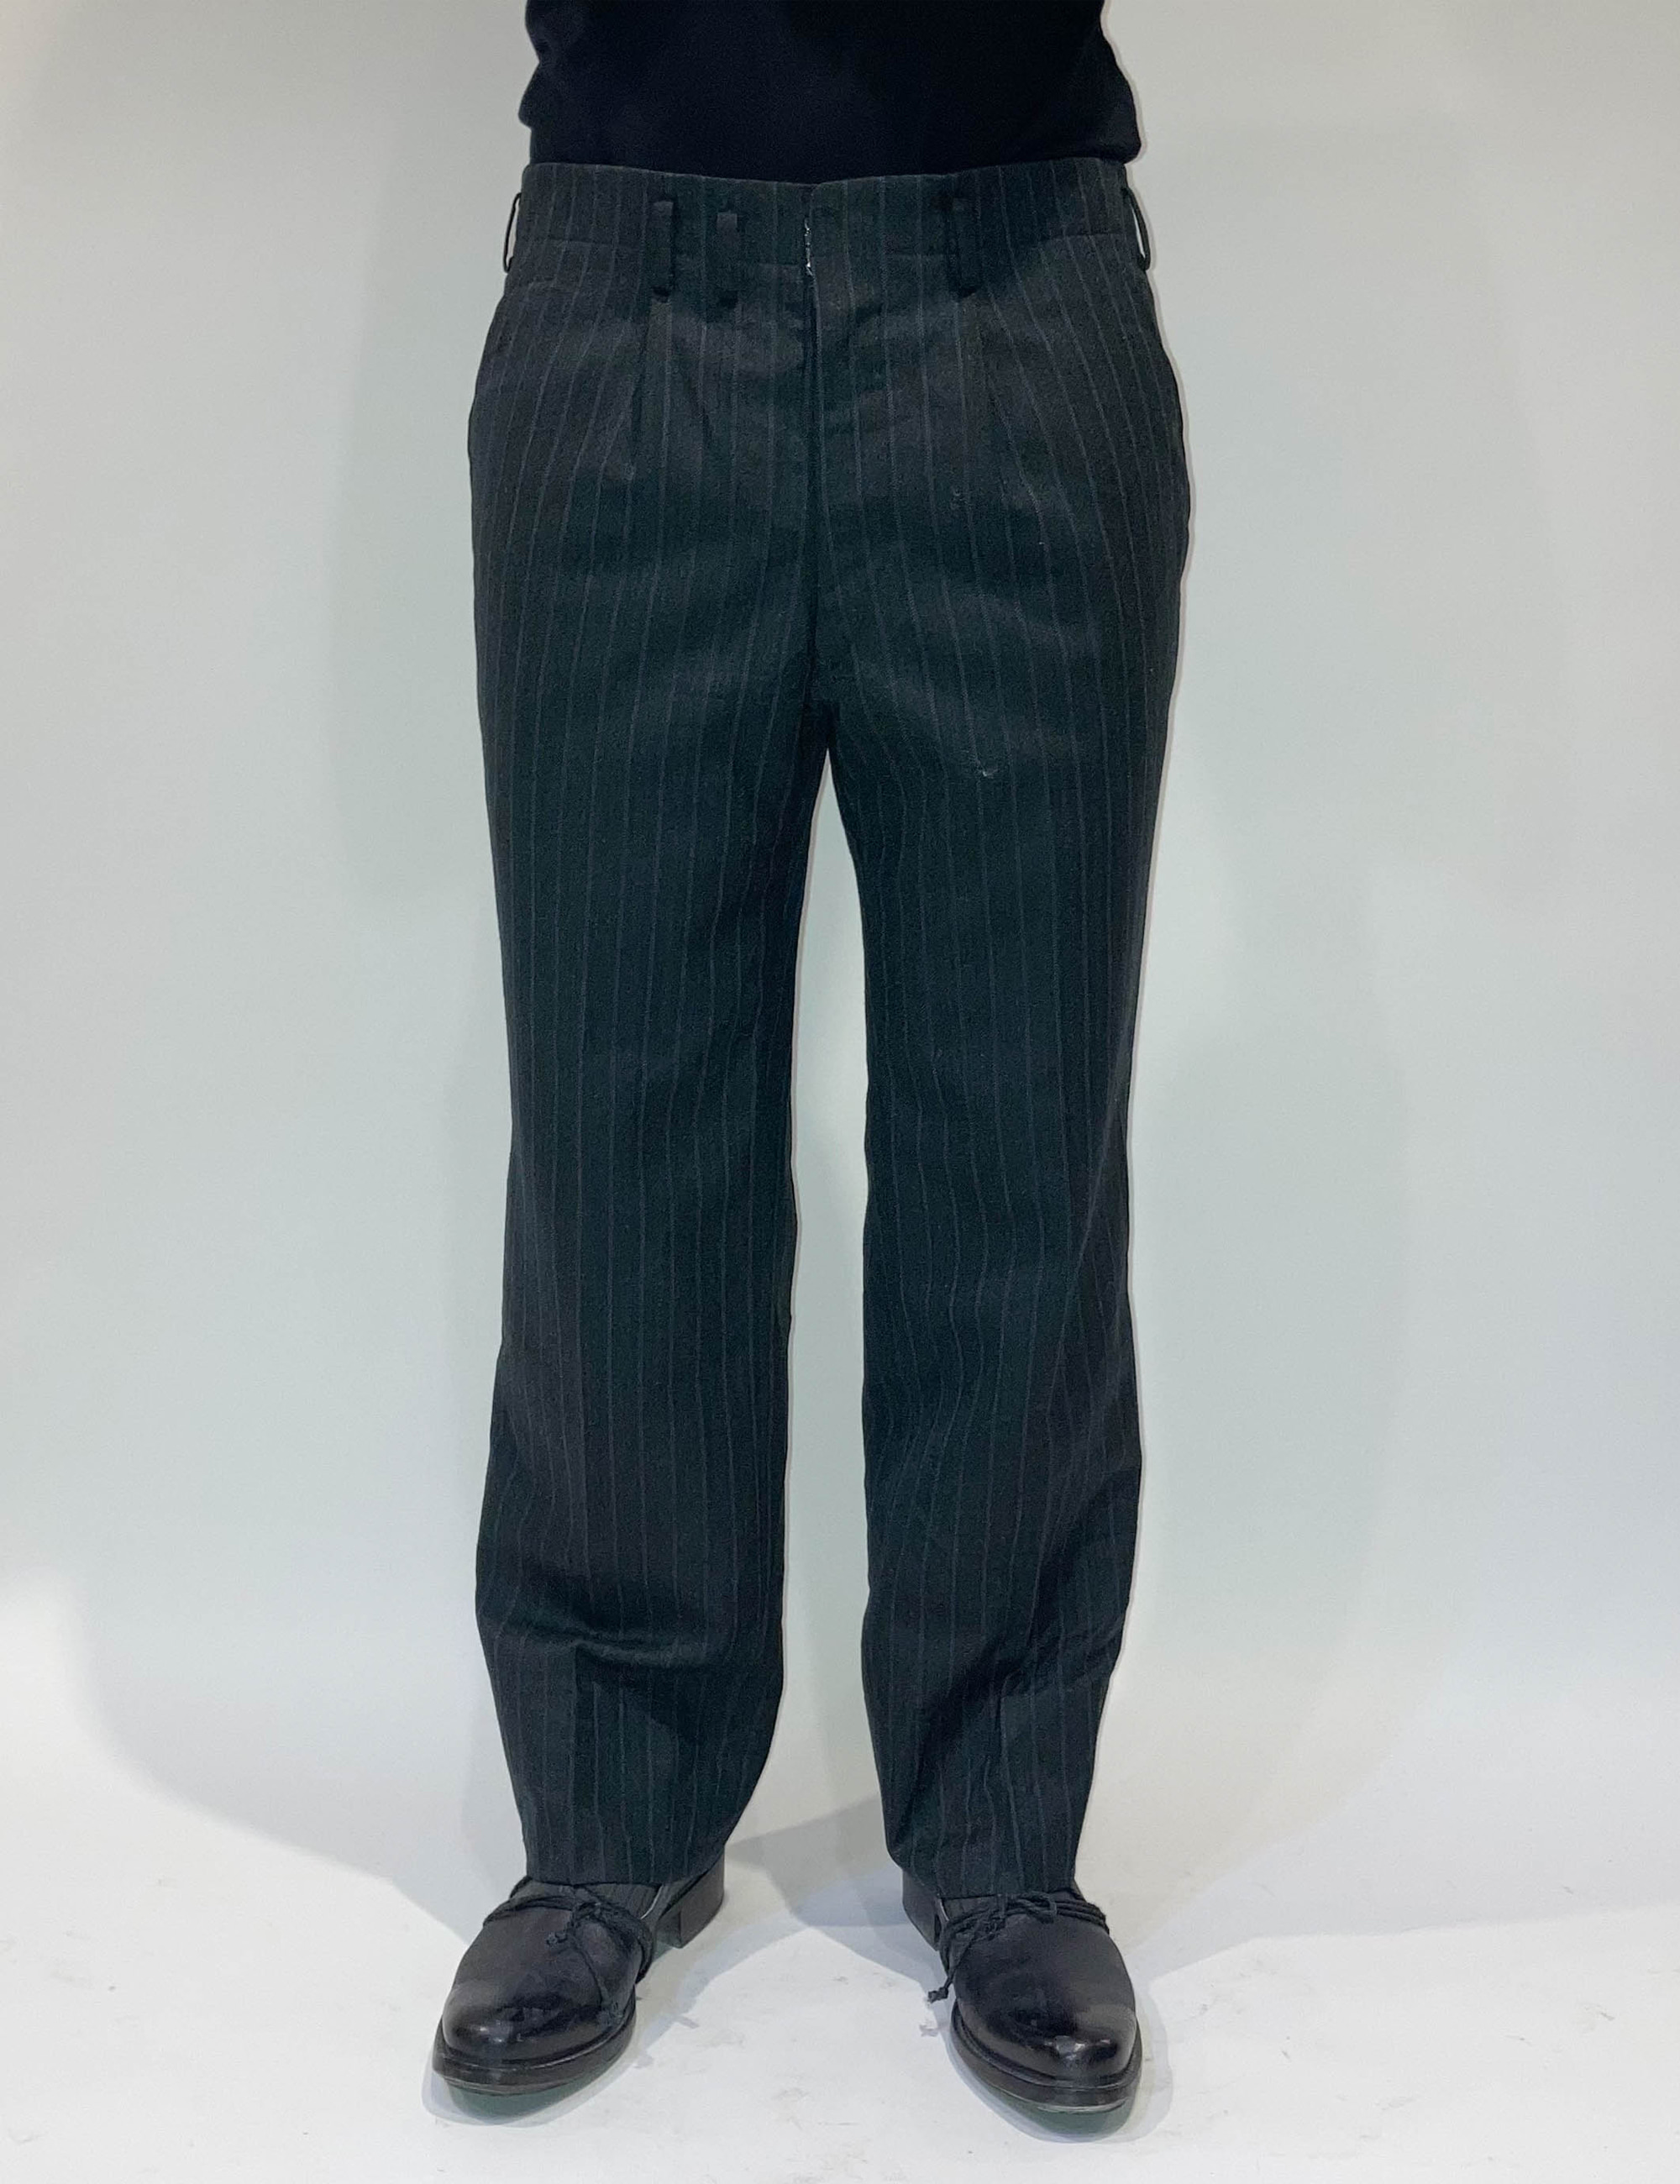 VINTAGE GRAY STIRPE PANTS